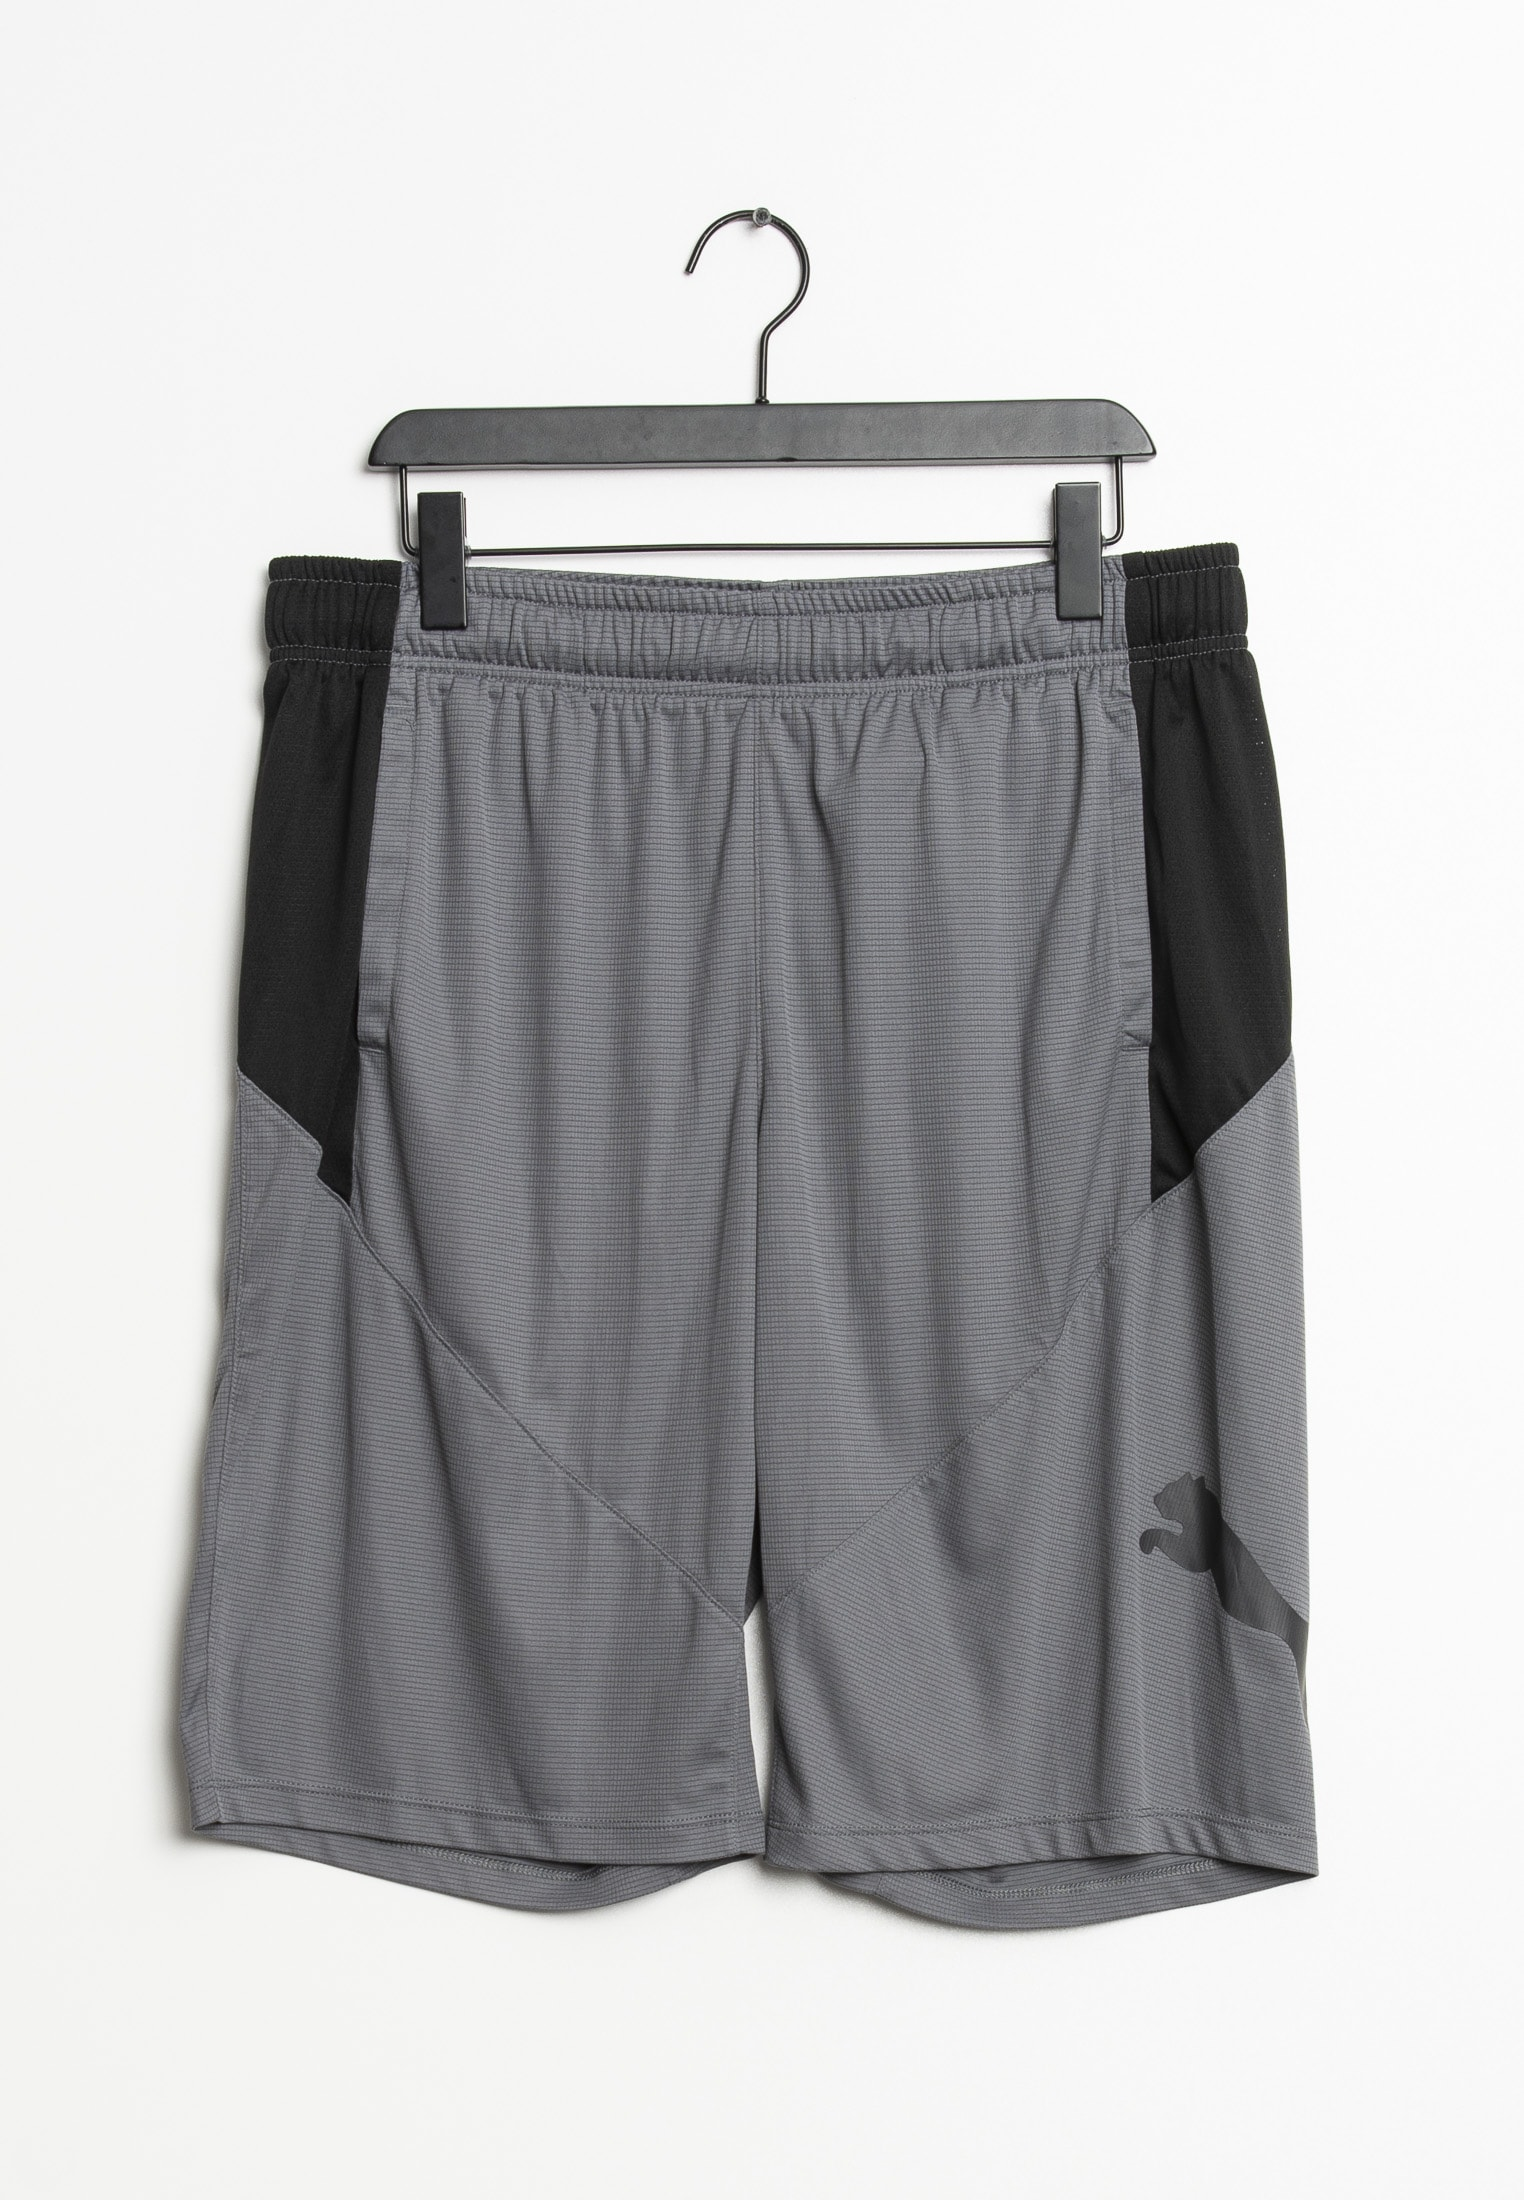 Puma Shorts Grau Gr.XL